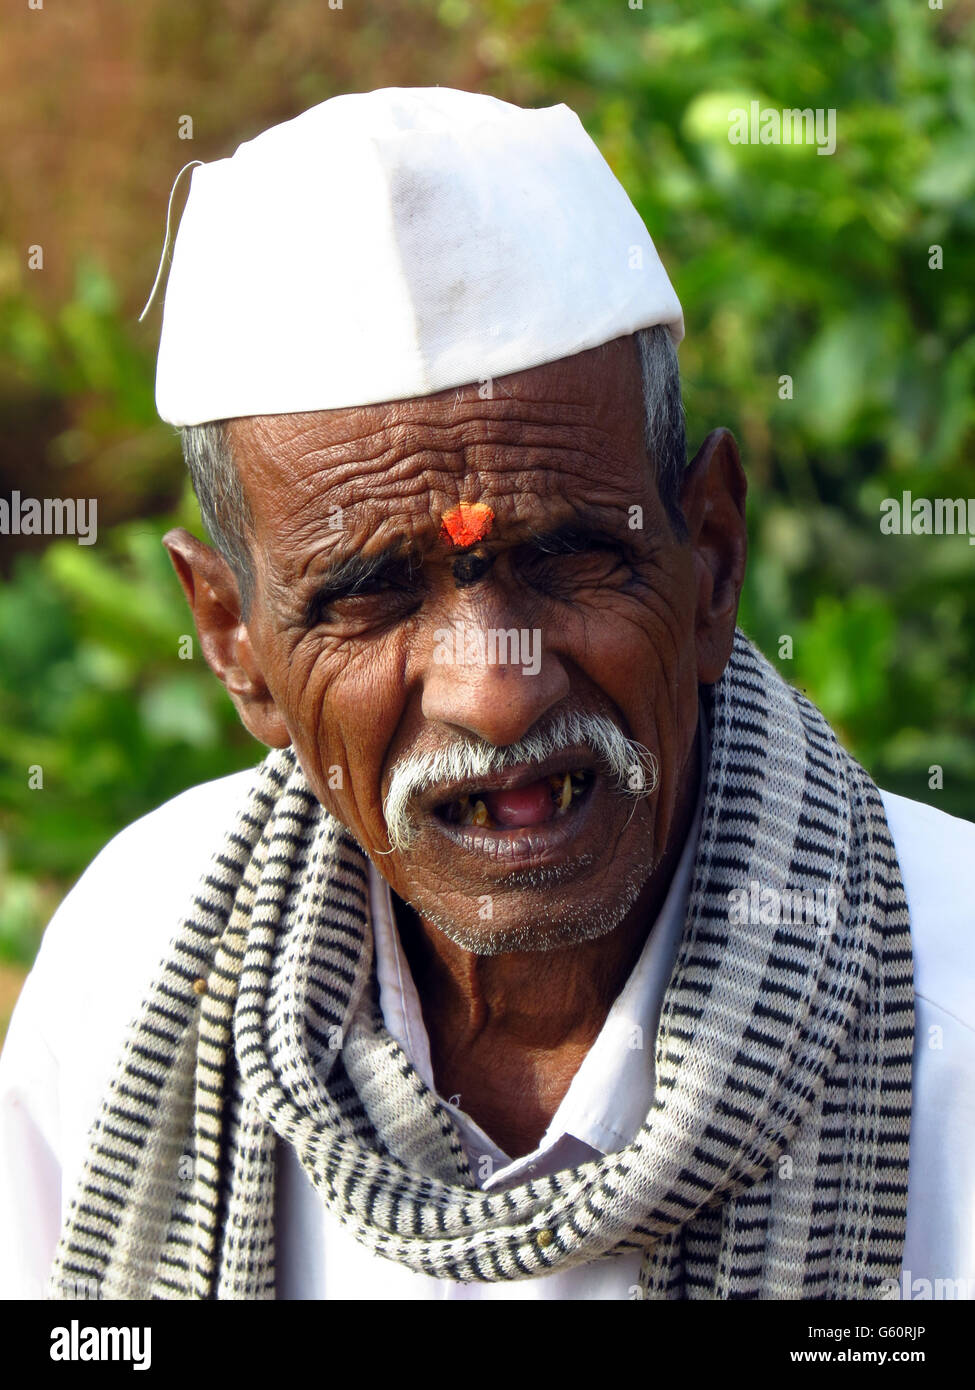 A poor old man from an Indian village with a wrinkled face aged with wisdom - Stock Image